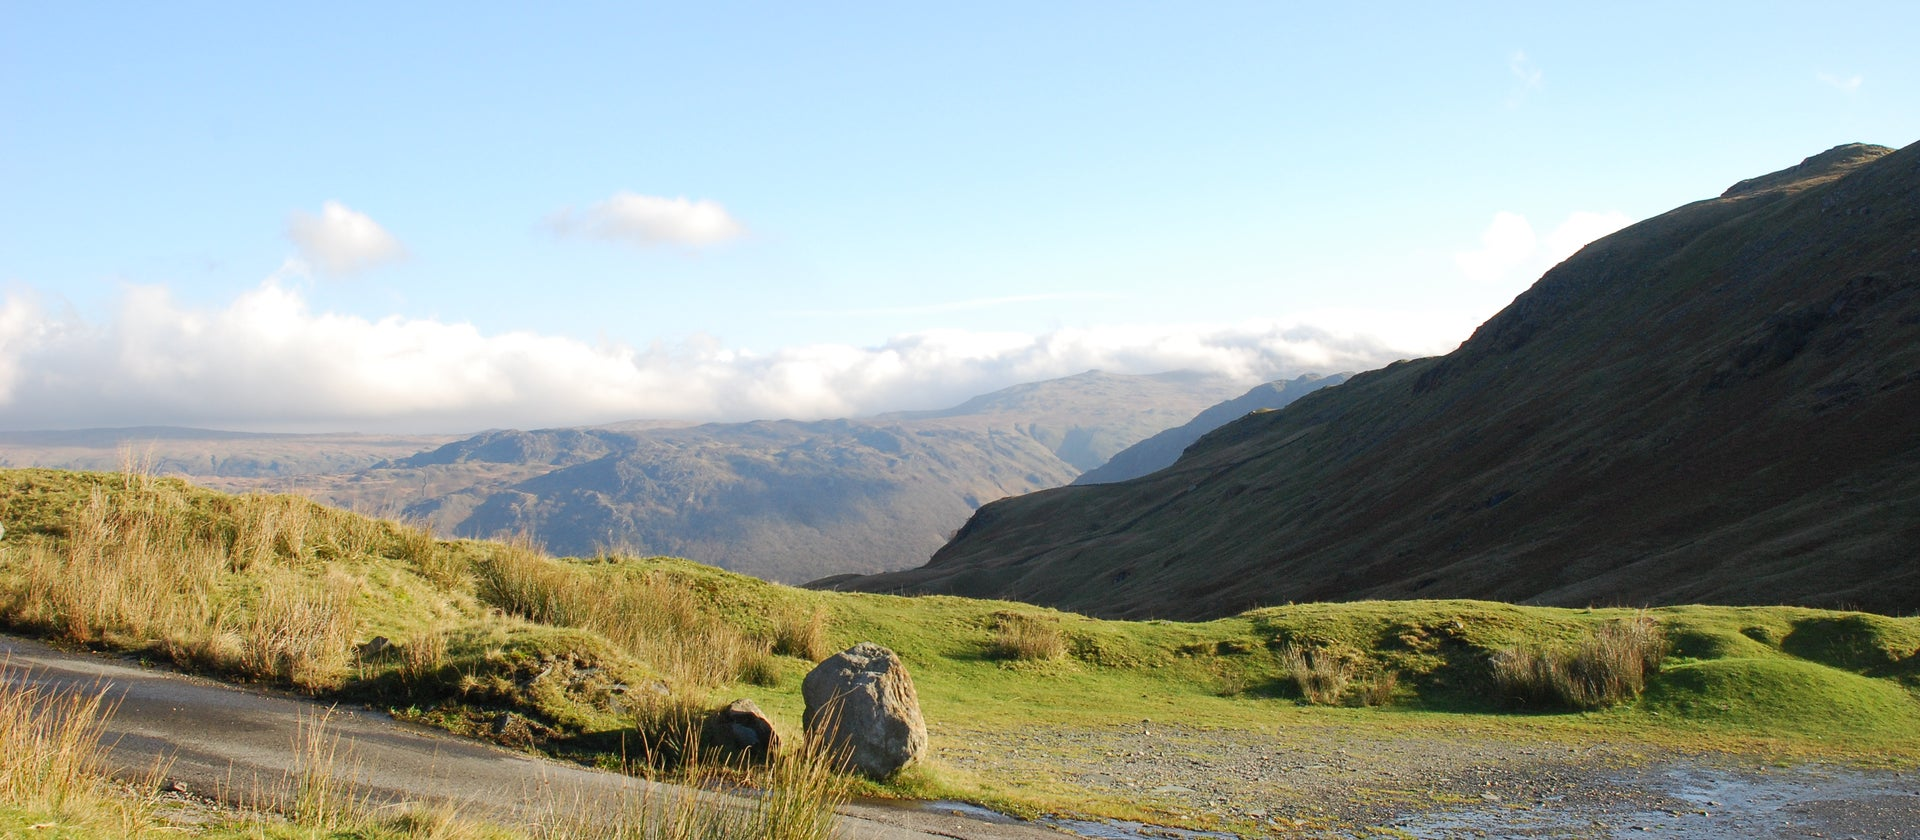 How Much Does It Cost To Register A Car >> Honister Pass National Trust car park Borrowdale | National Trust